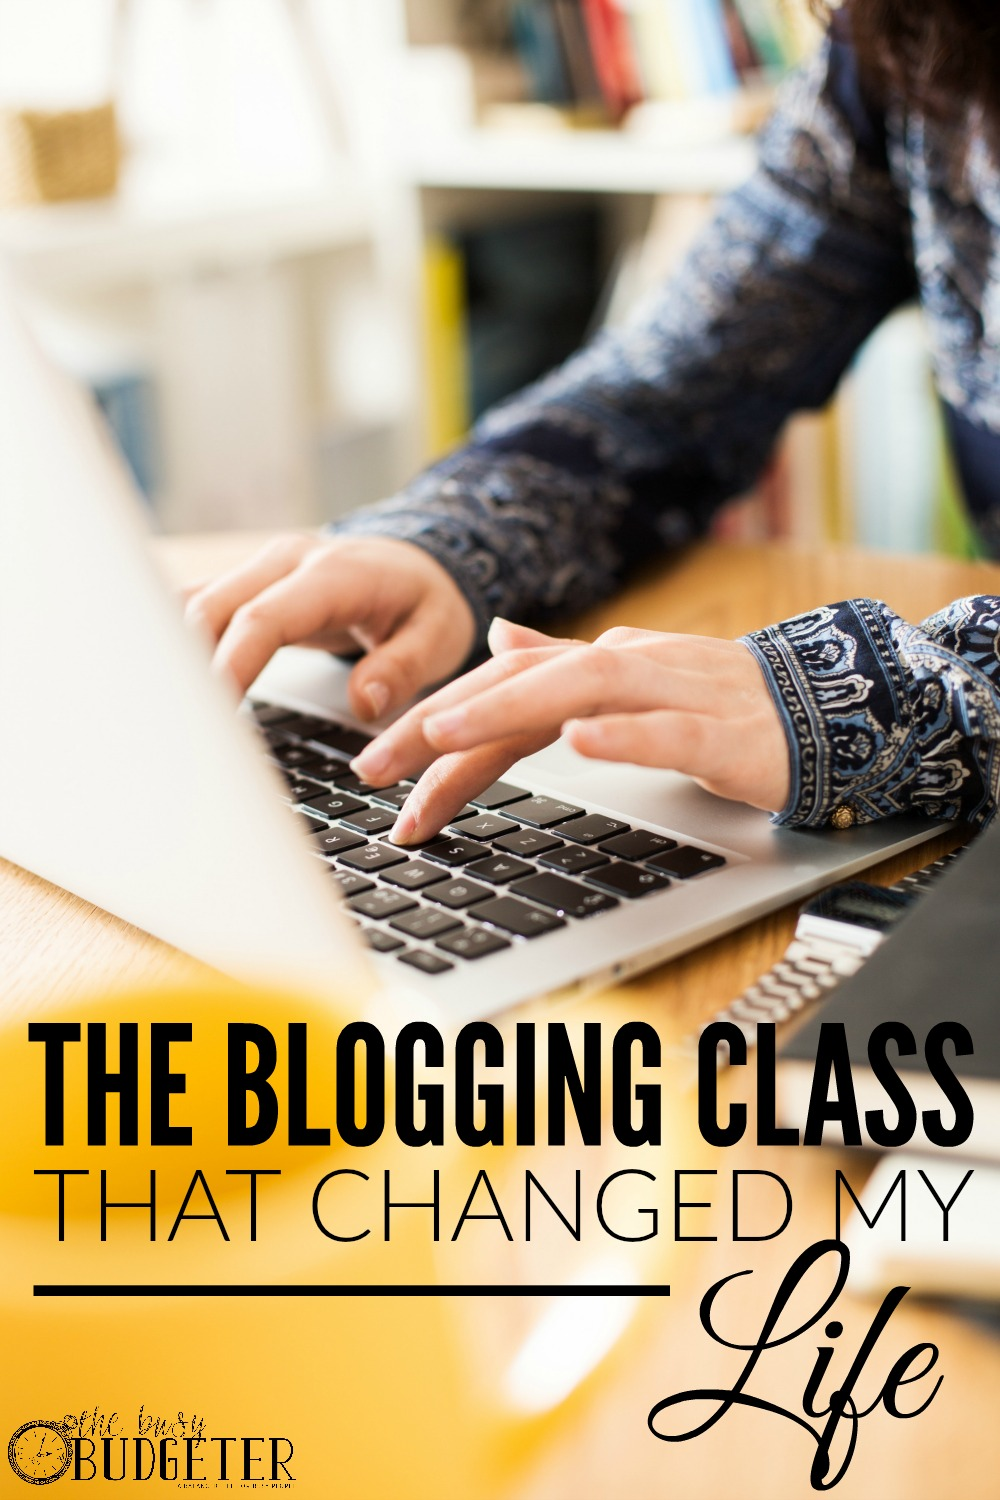 Blogging Class that Changed My Life - OMG I've been waiting for EBA to open up again! I'm so freaking excited I can't wait to take this class. It's a serious investment for me but I know it's going to be totally worth it!